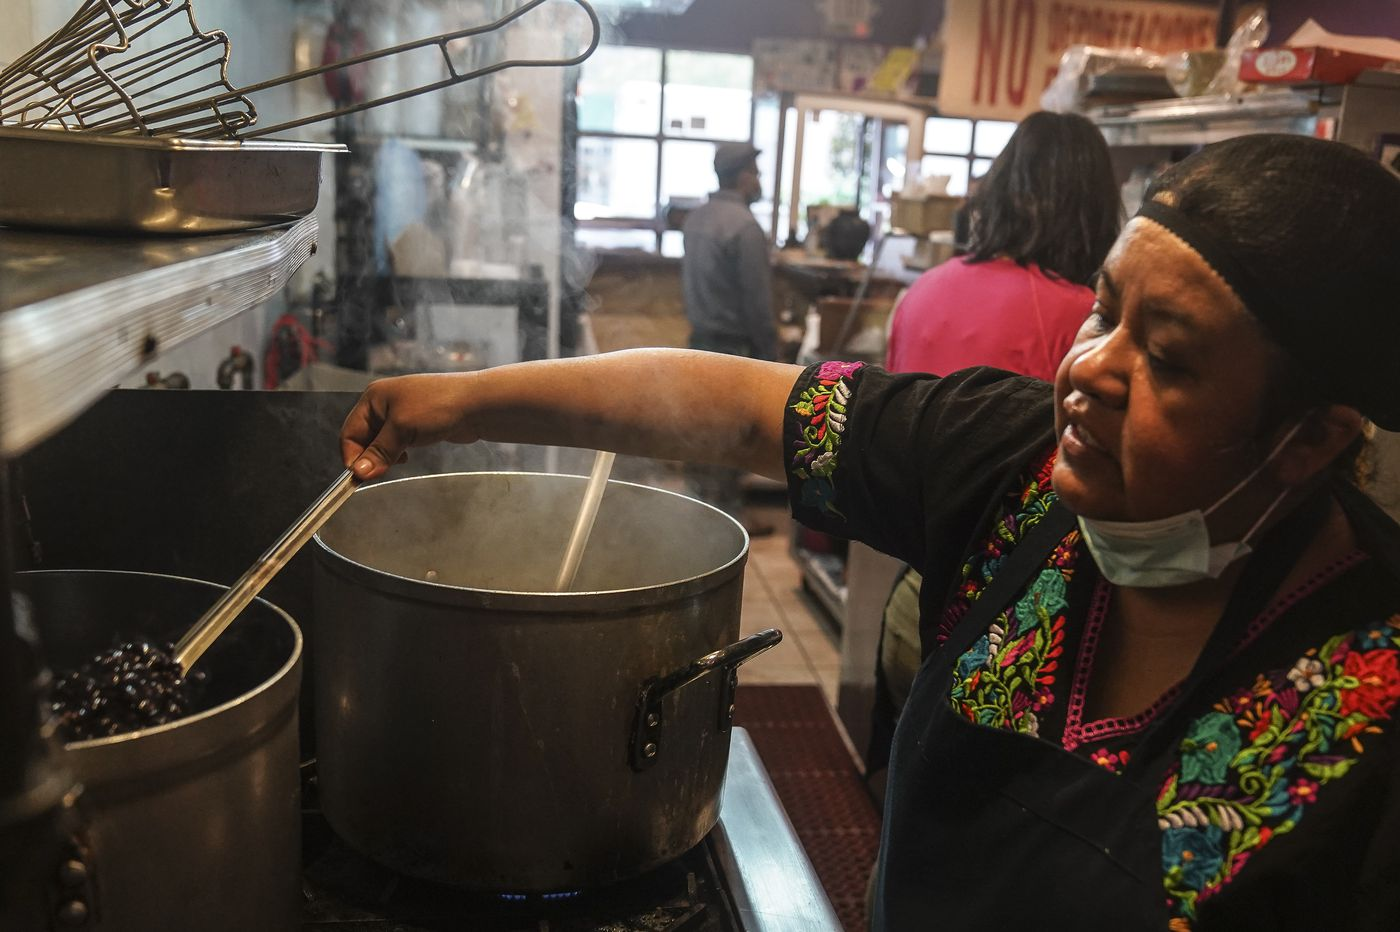 This award-winning South Bronx restaurant turns into soup kitchen to help the poor